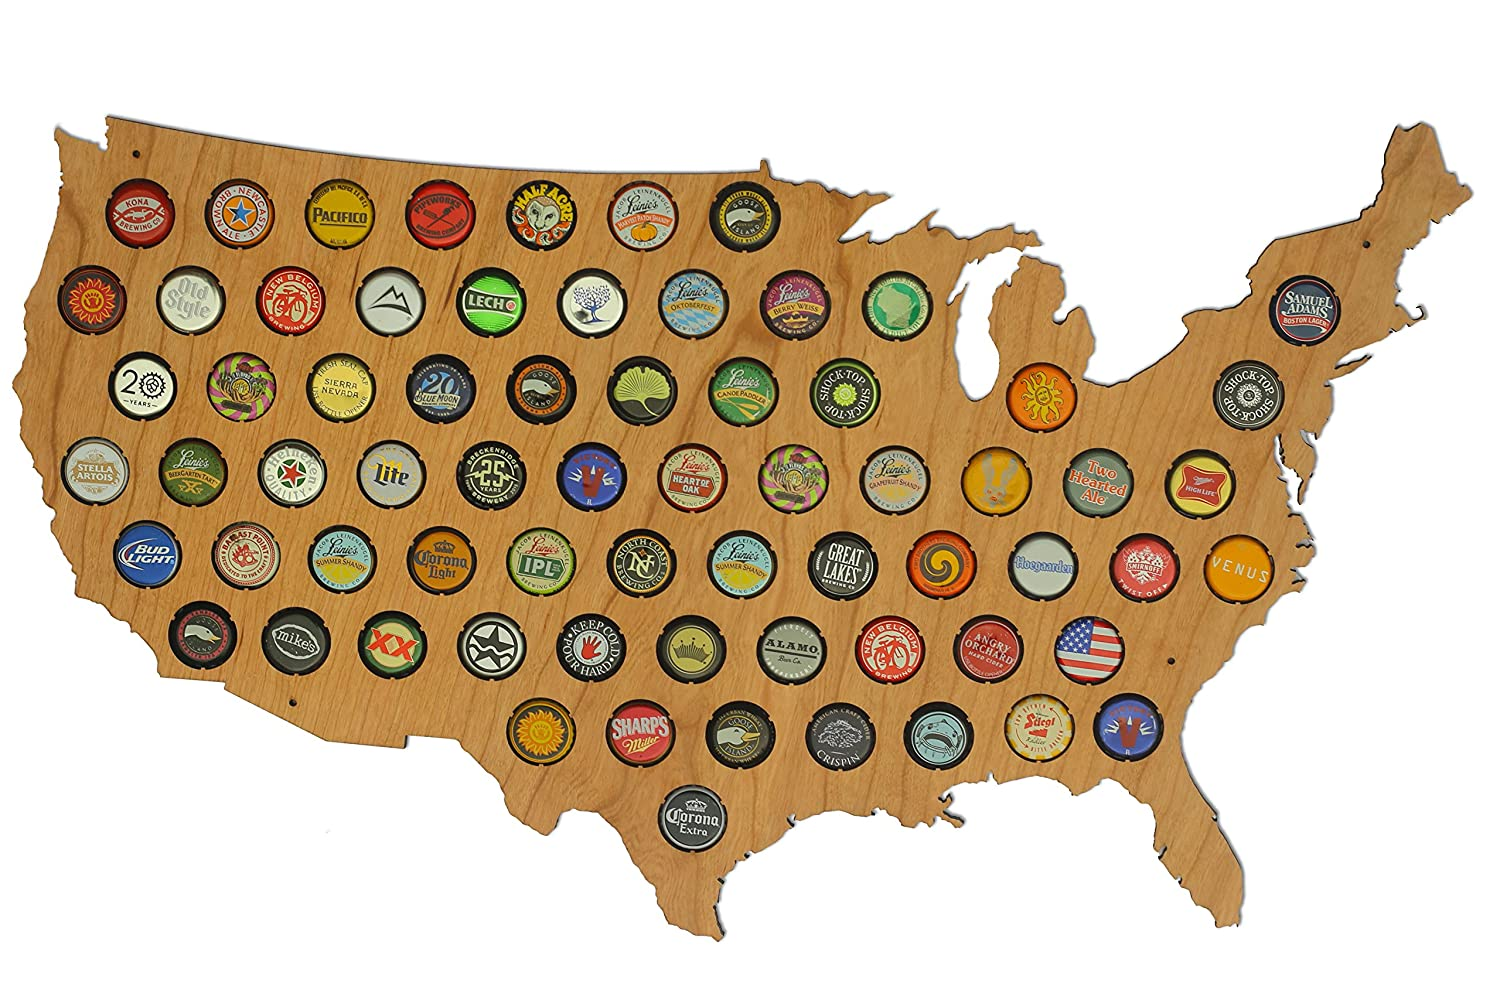 Amazoncom USA Beer Cap Map Ultra Detailed Glossy Wood Bottle - Usa map buy